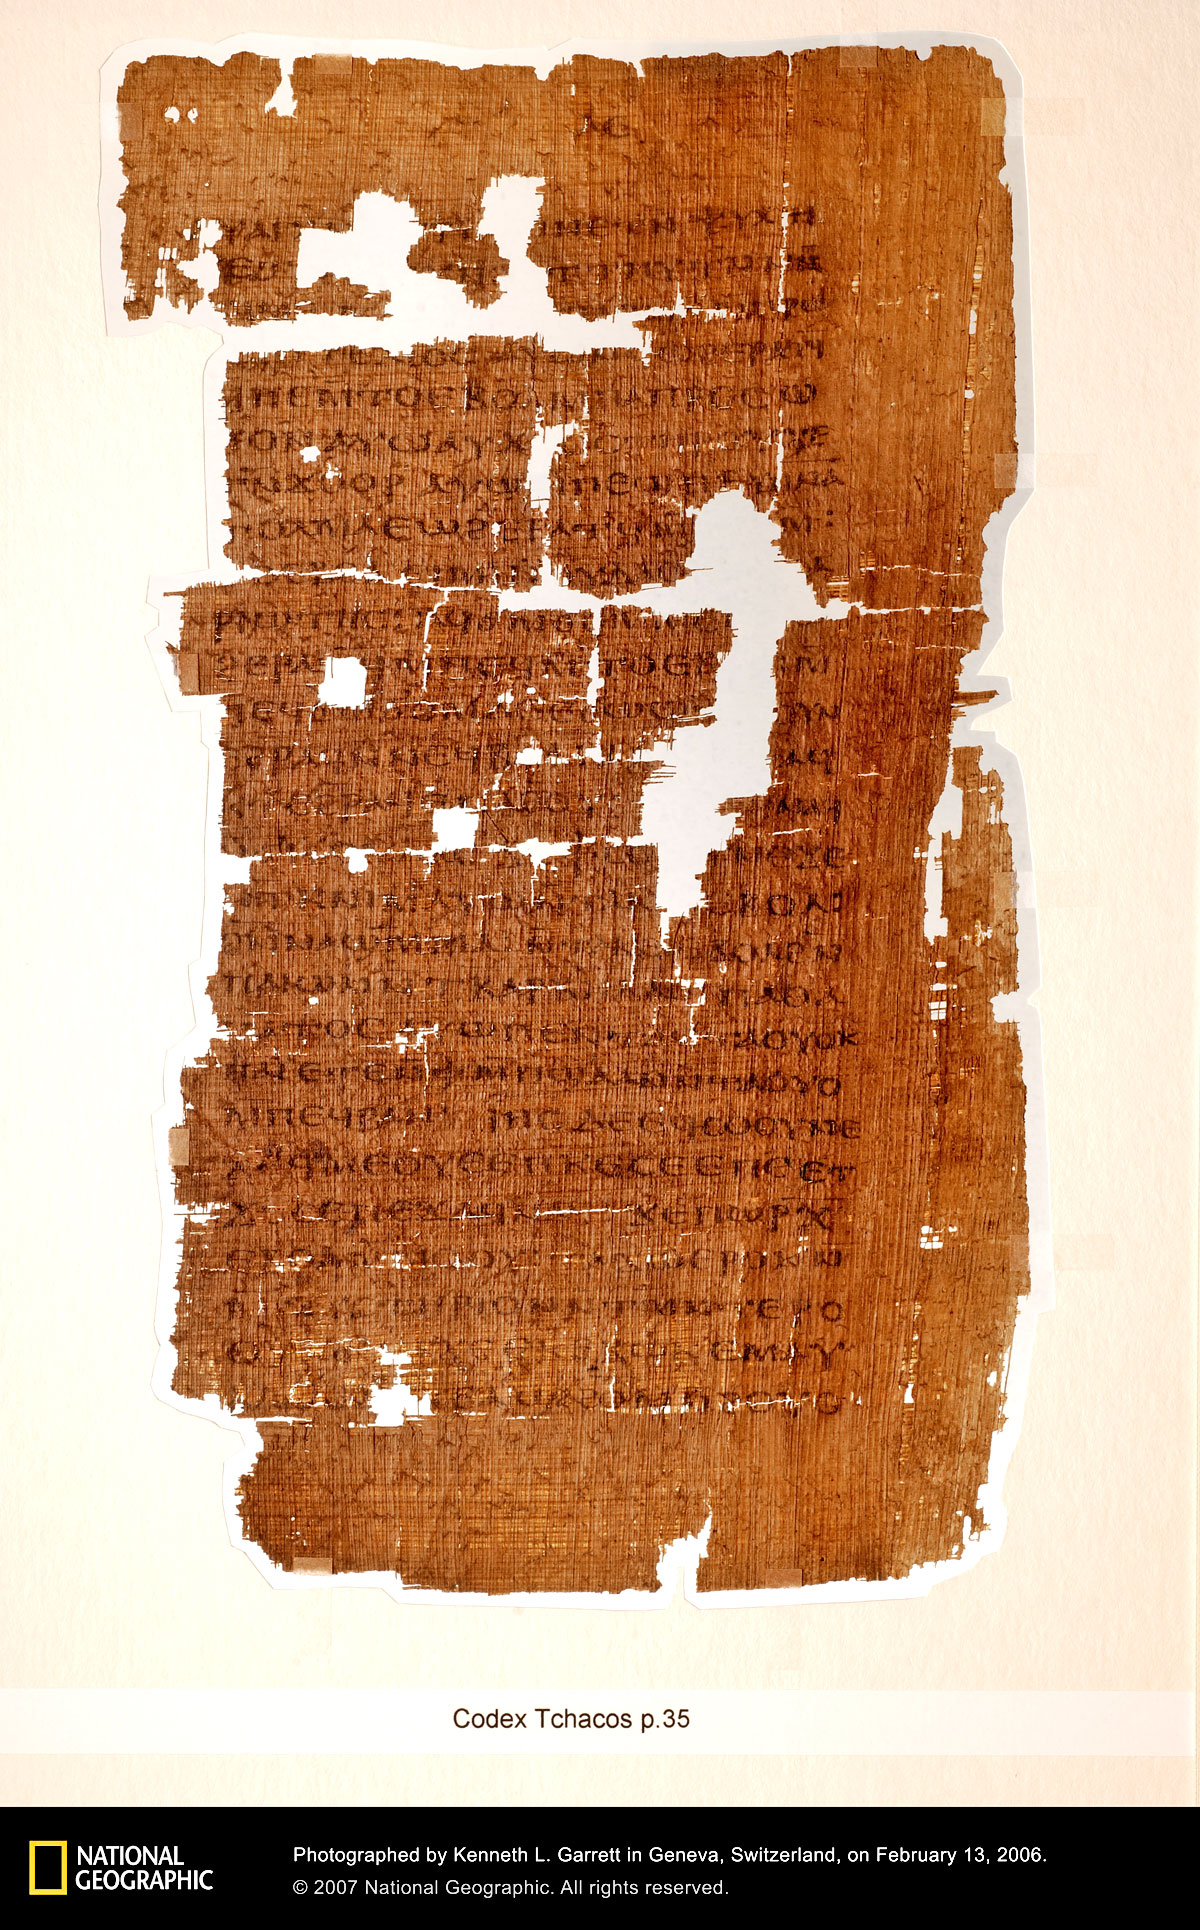 Where Is All Money Coming From >> The Lost Gospel of Judas - From the Codex Tchacos